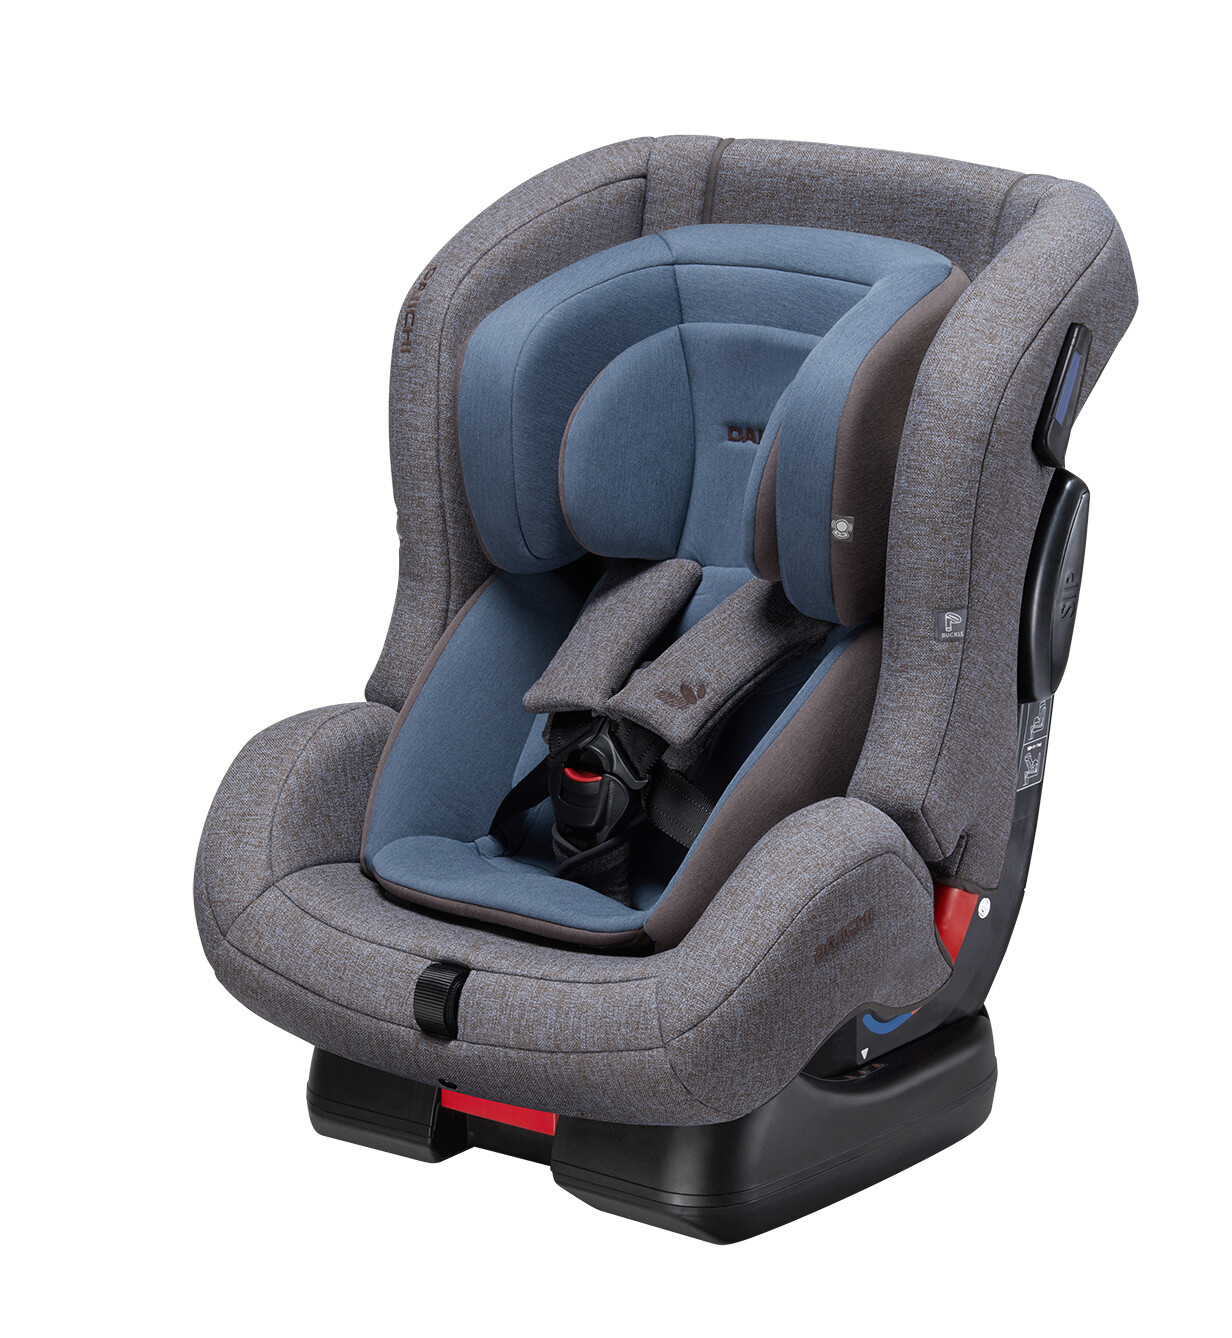 Daiichi First 7 Plus Car Seat without ISOFIX